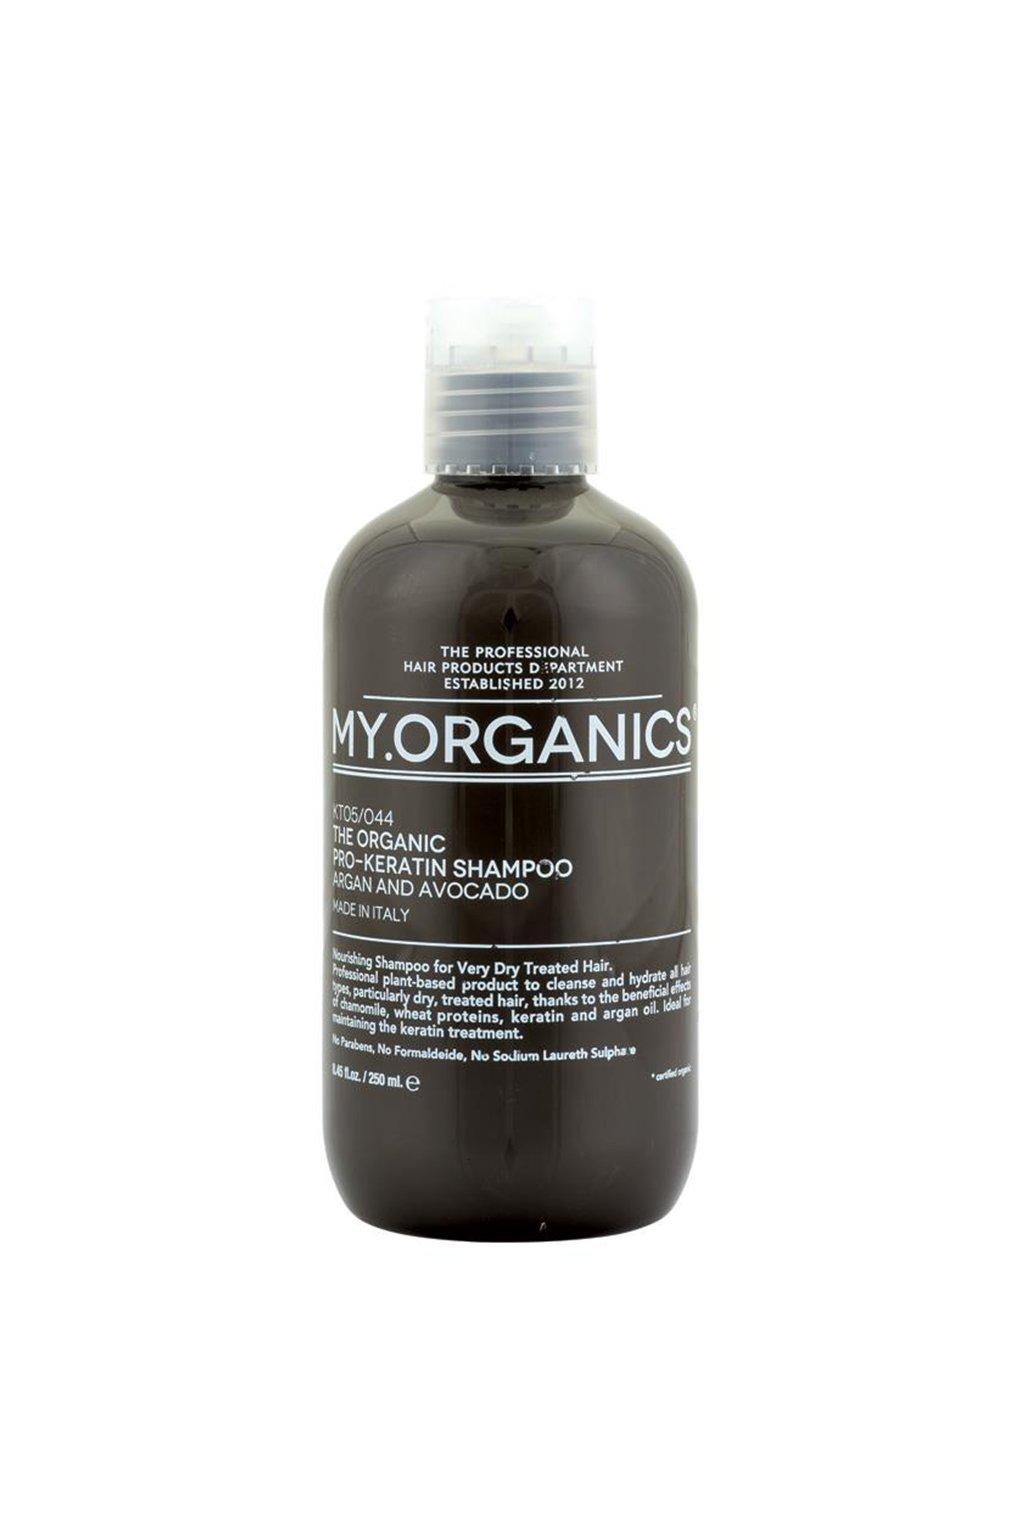 THE ORGANIC PRO KERATIN SHAMPOO ARGAN AND AVOCADO